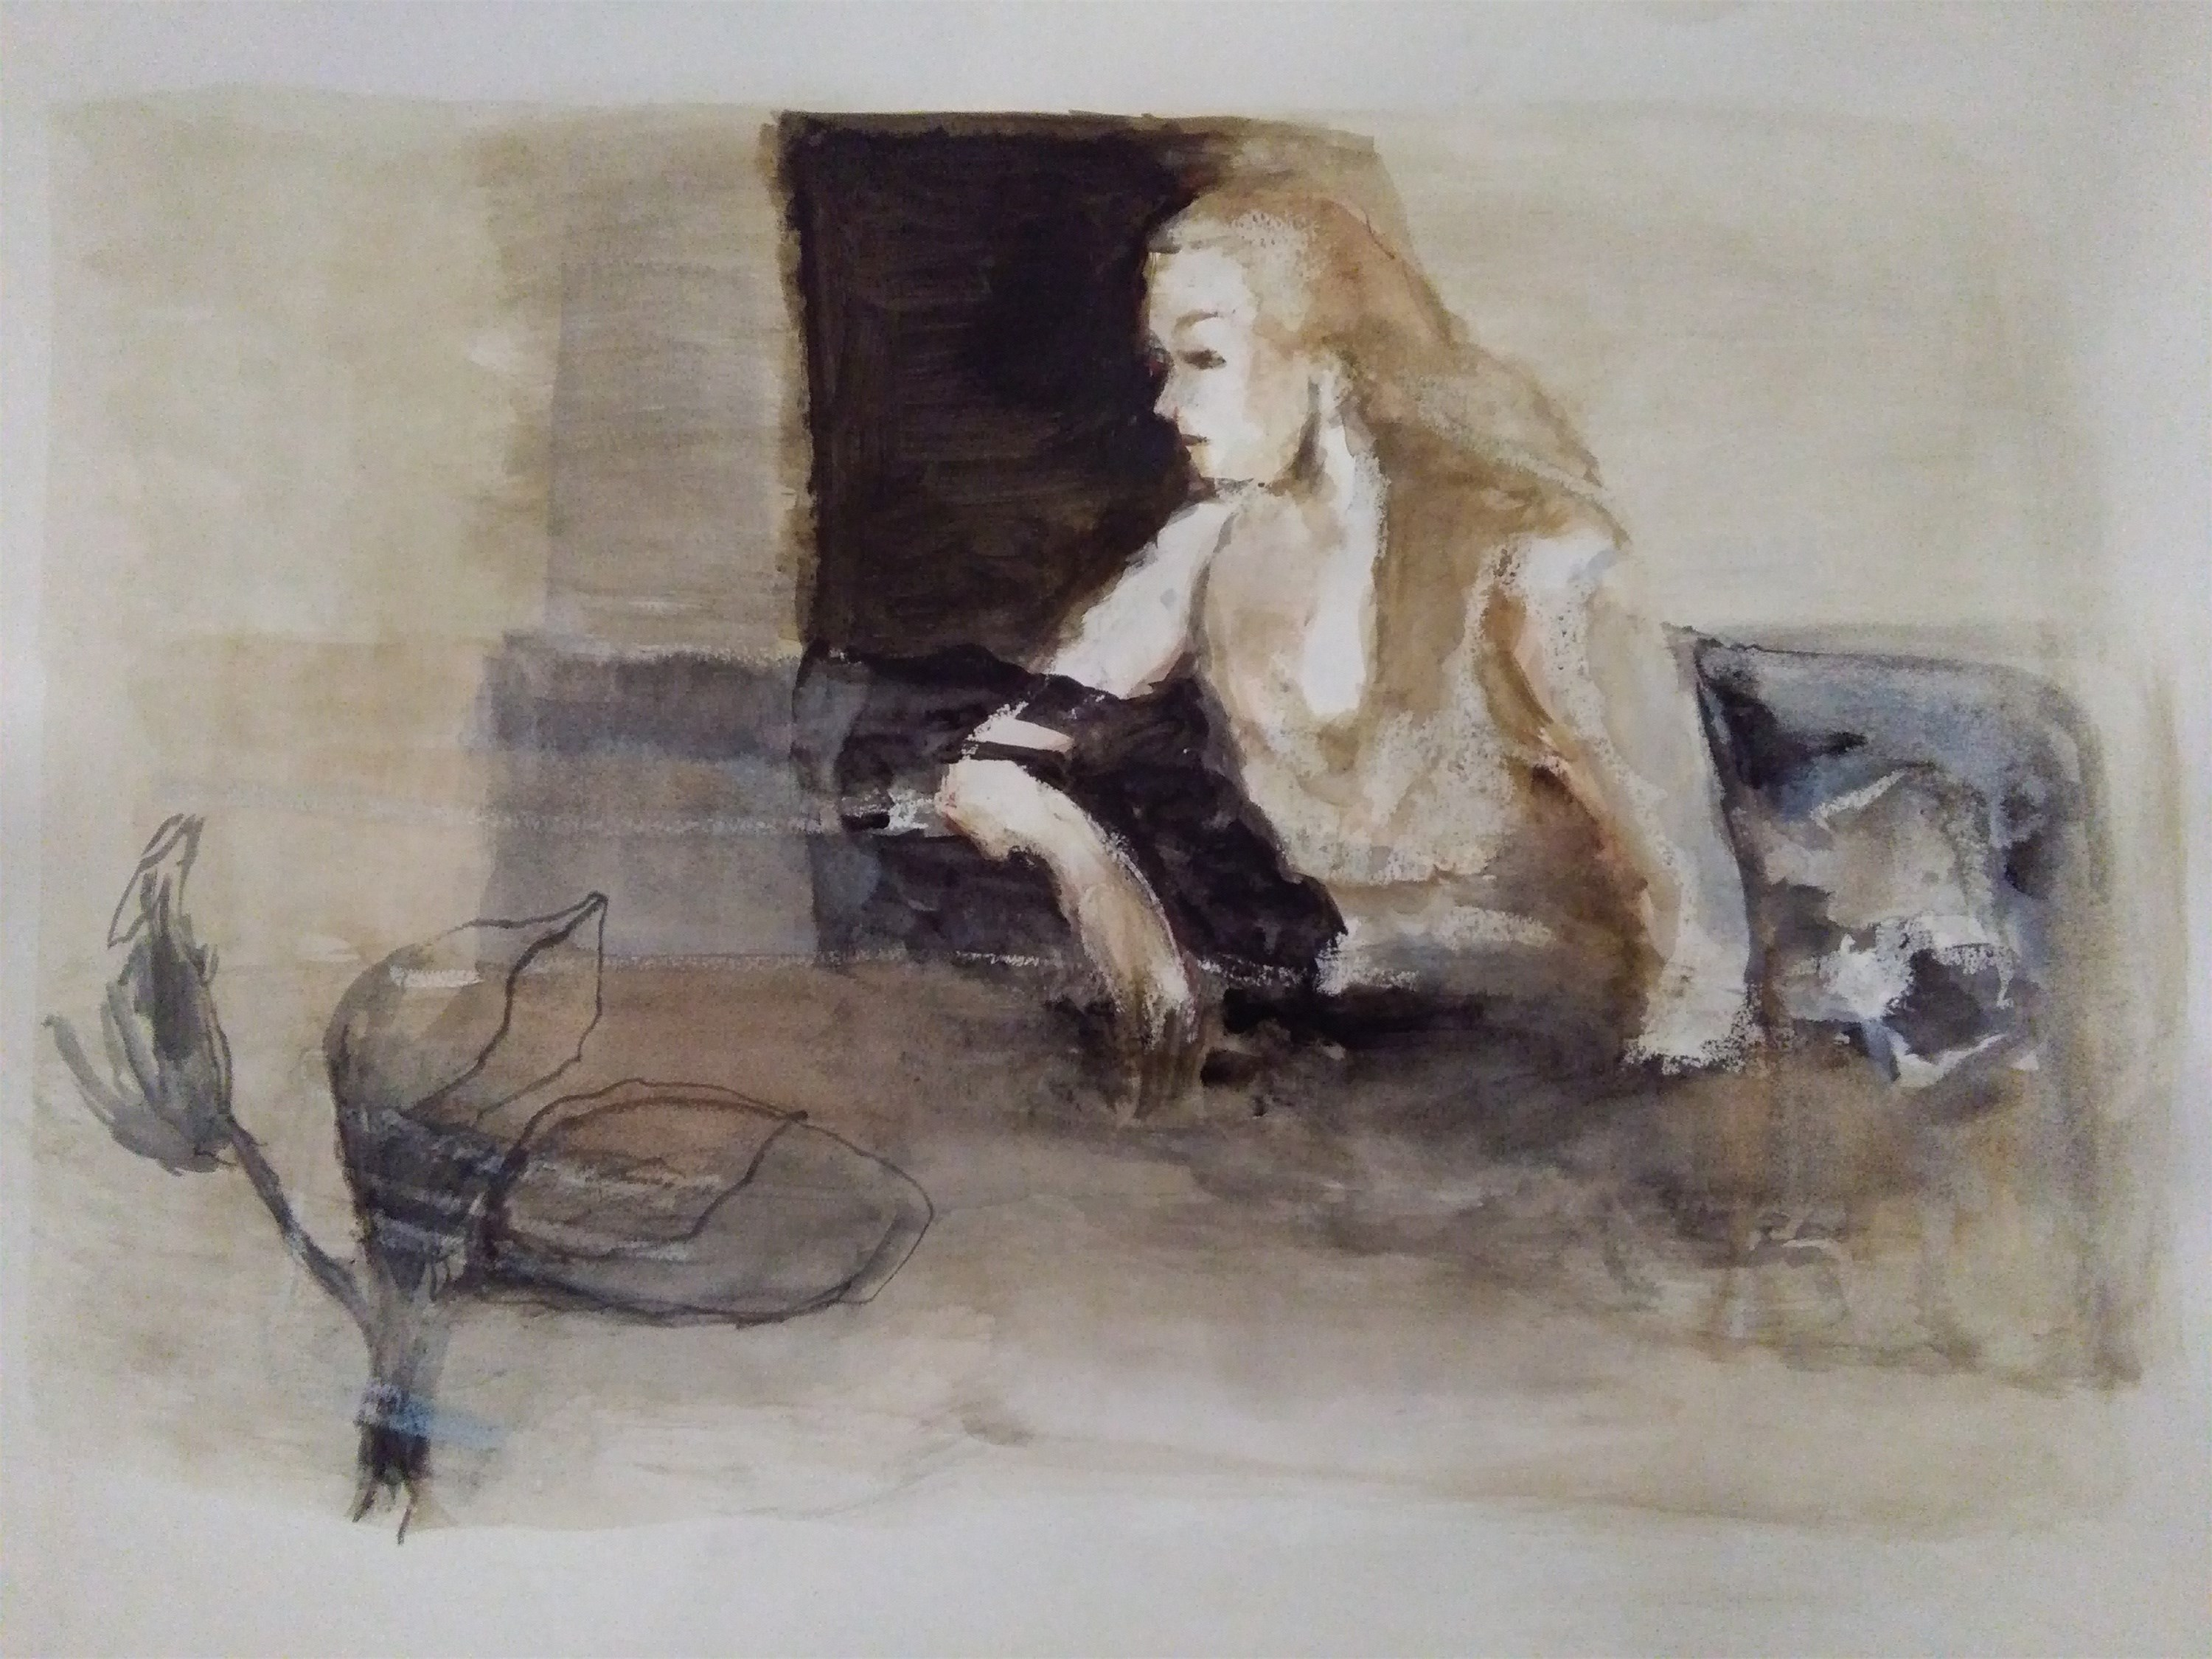 American Life, original Human Figure Watercolor Painting by CARLA GONCALVES